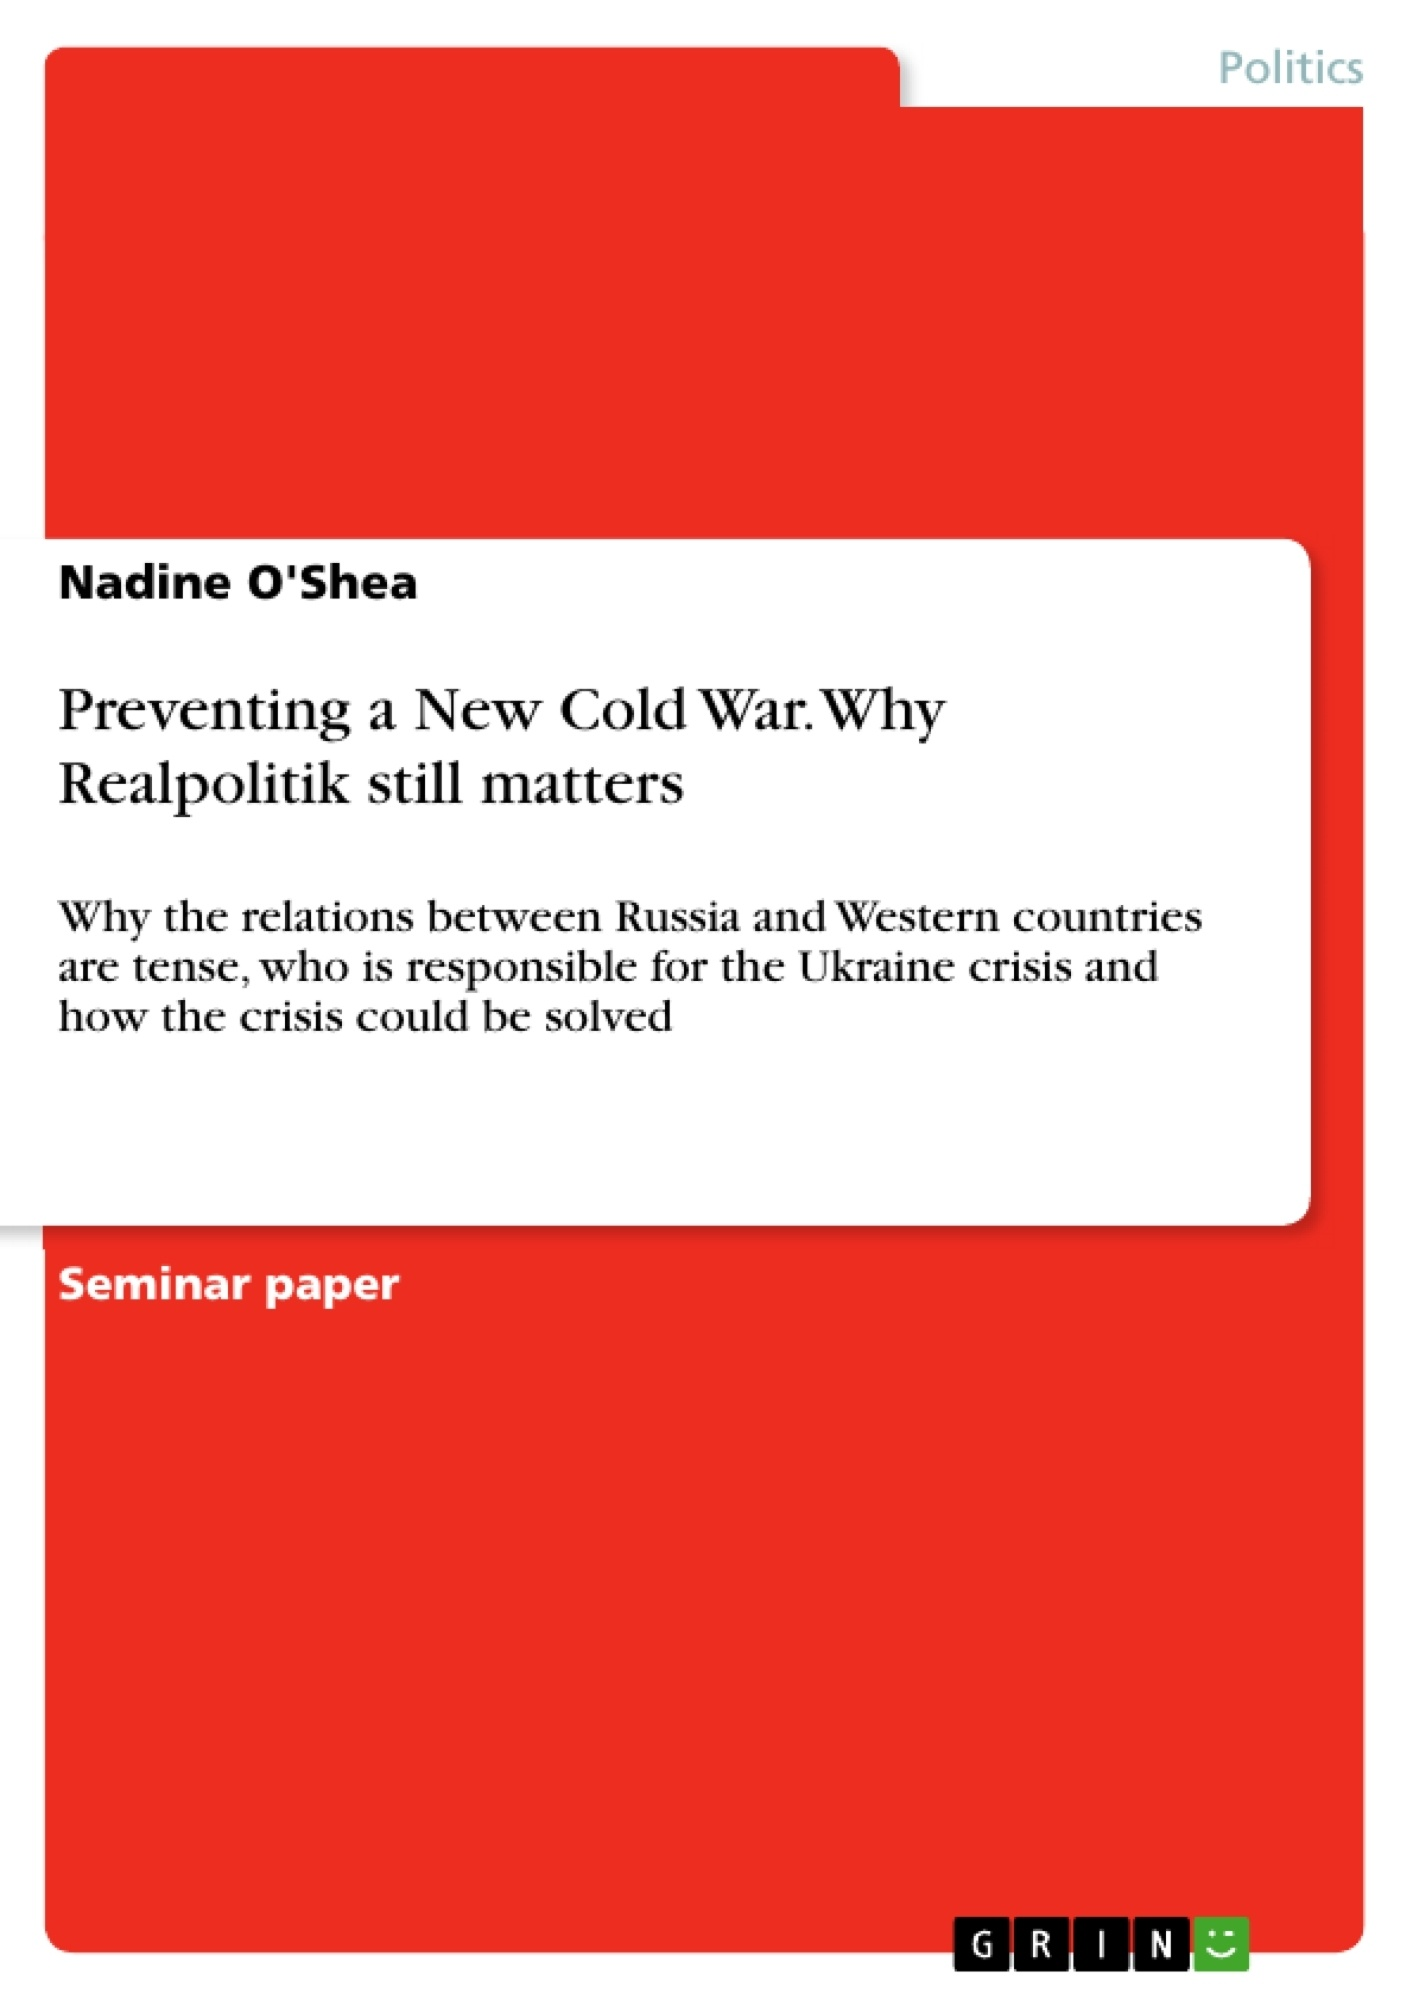 Title: Preventing a New Cold War. Why Realpolitik still matters